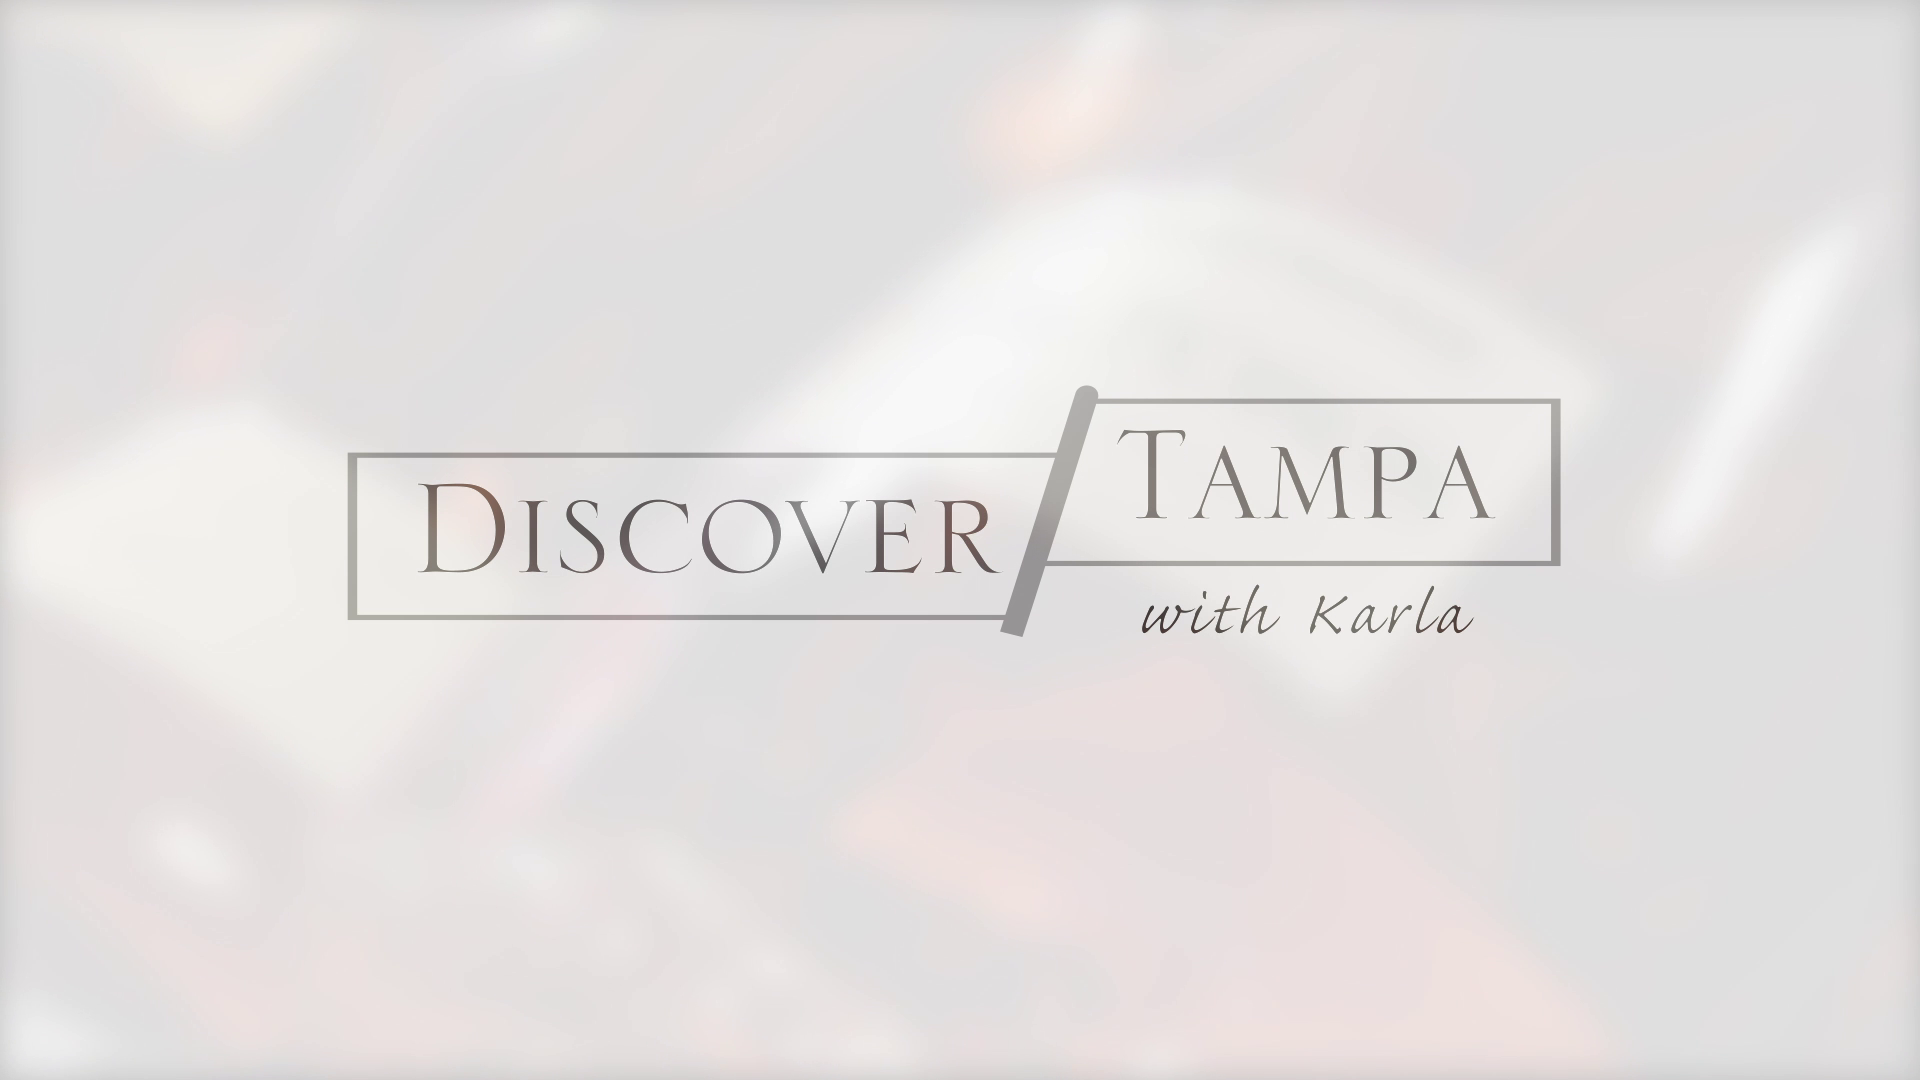 Discover Tampa with Karla - Redneck Wine Company